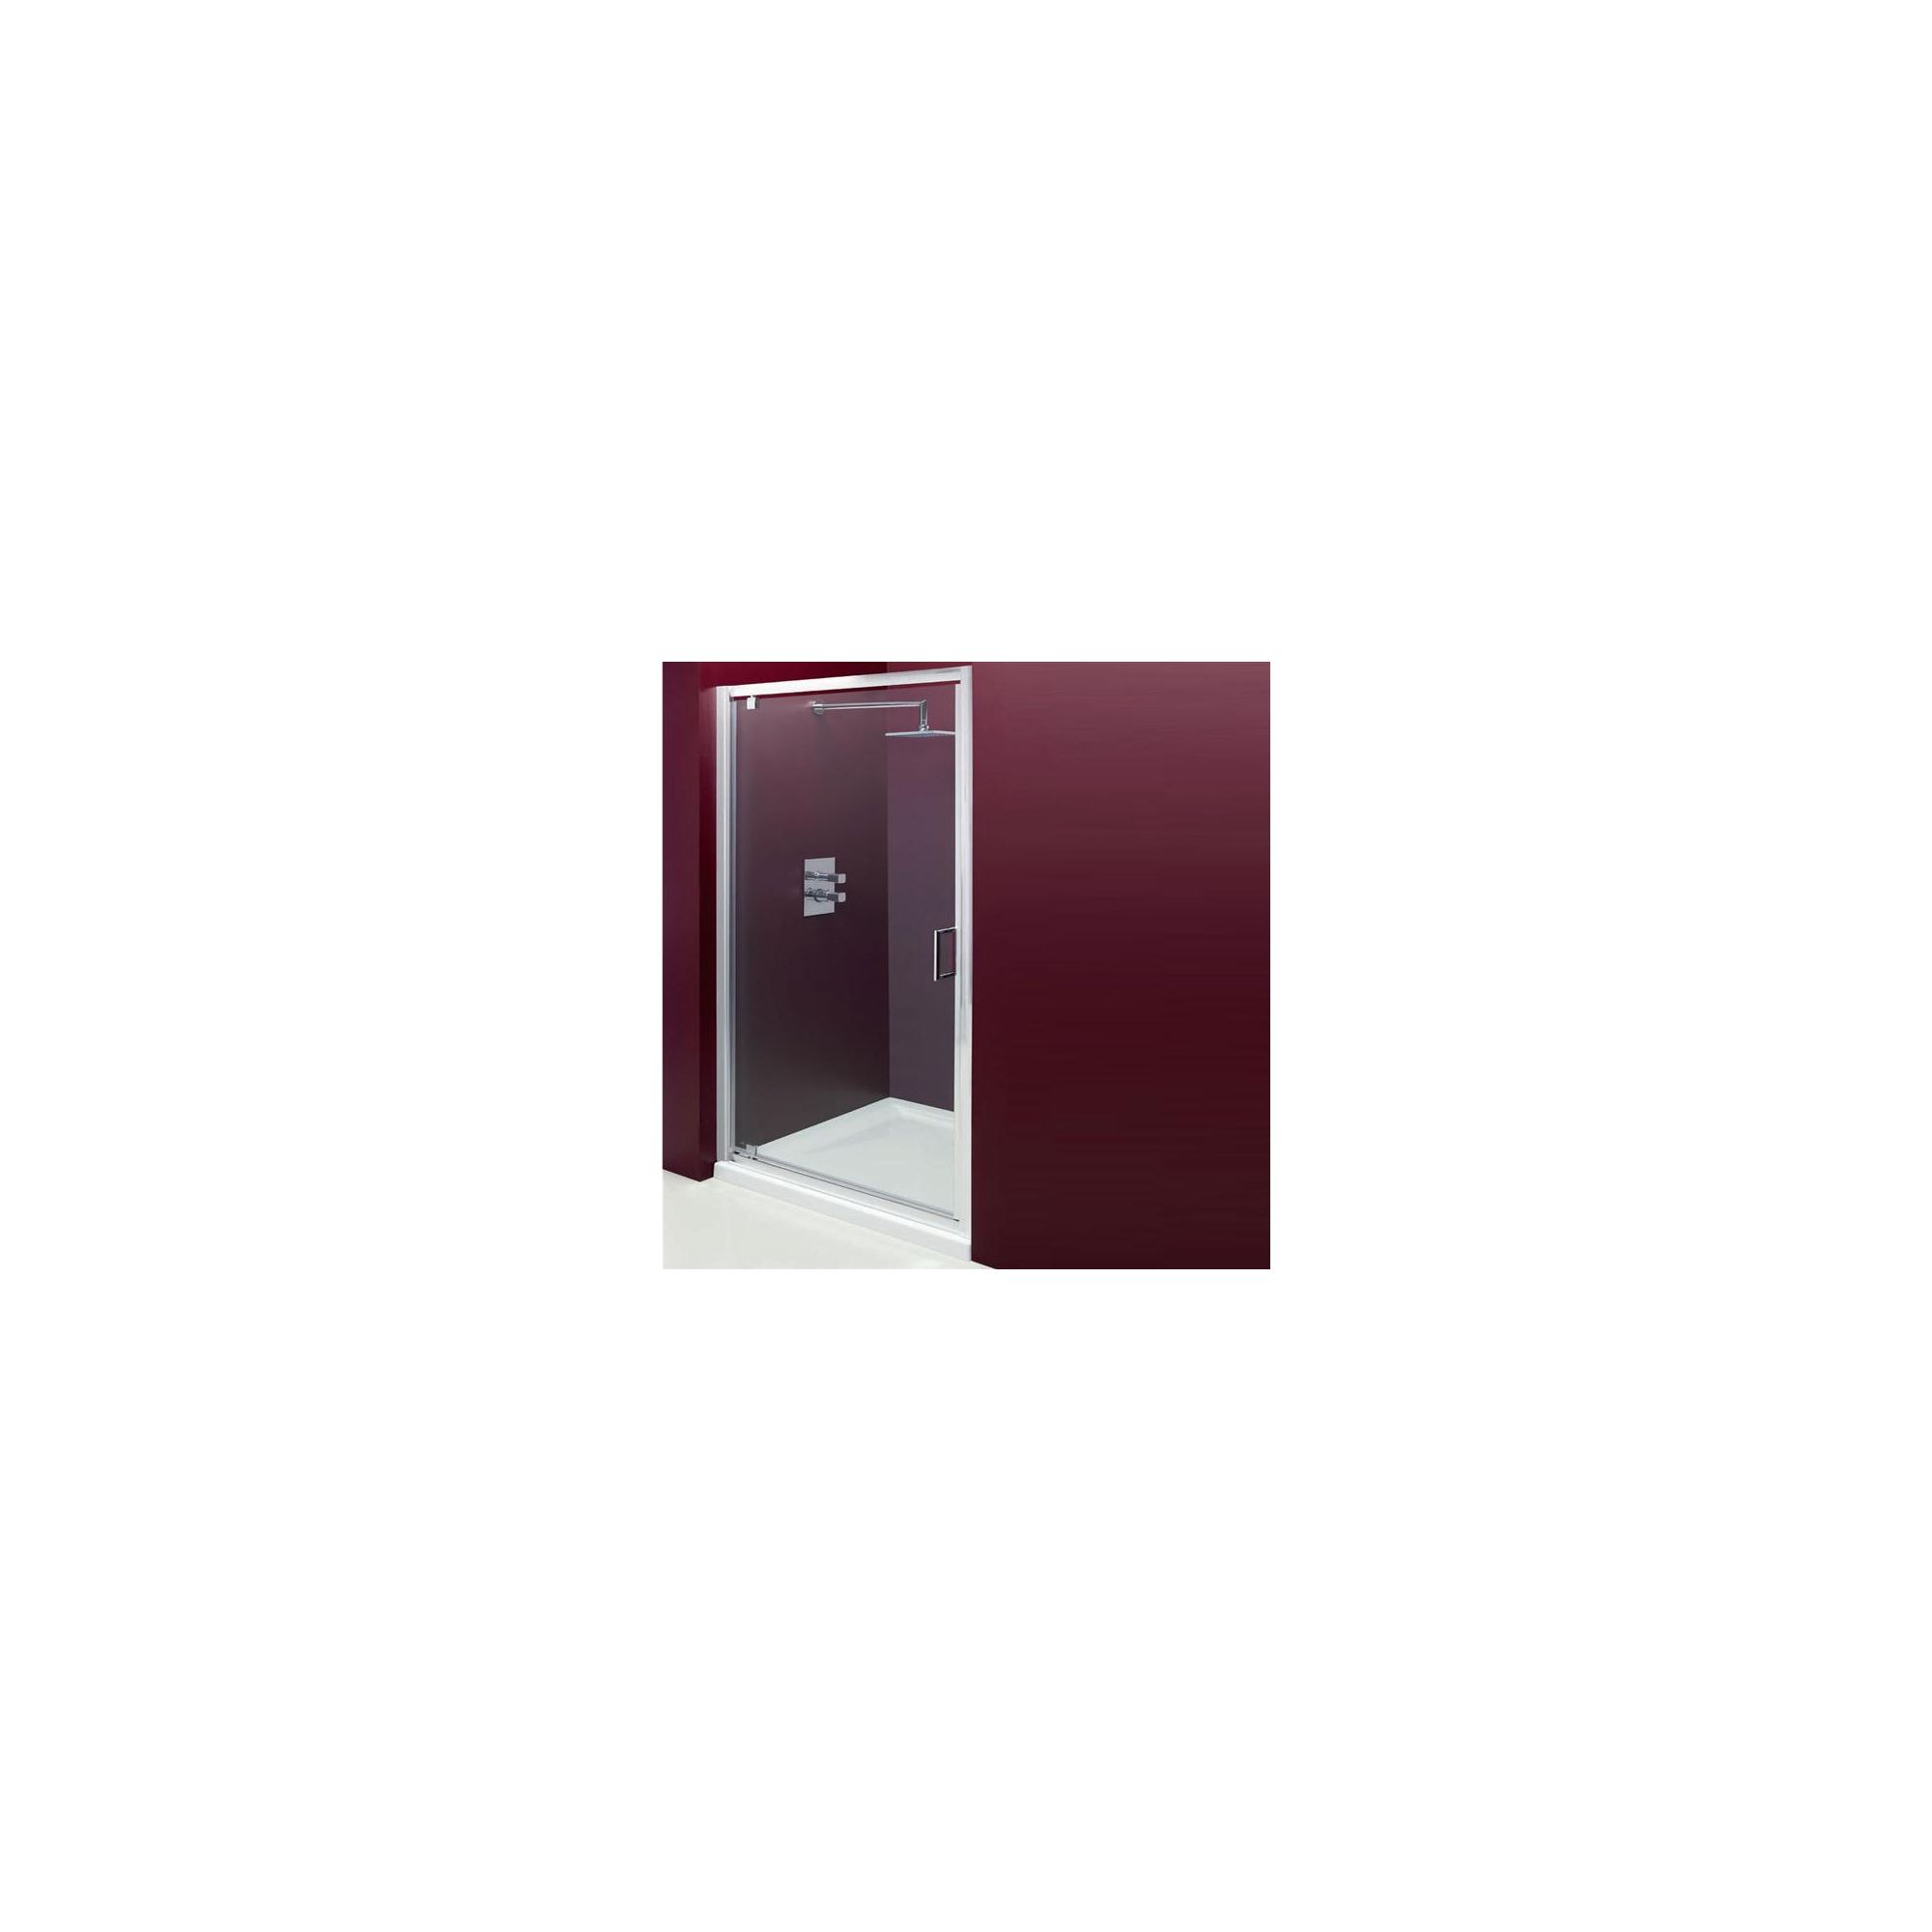 Merlyn Vivid Entree Pivot Door Alcove Shower Enclosure, 800mm x 800mm, Low Profile Tray, 6mm Glass at Tesco Direct